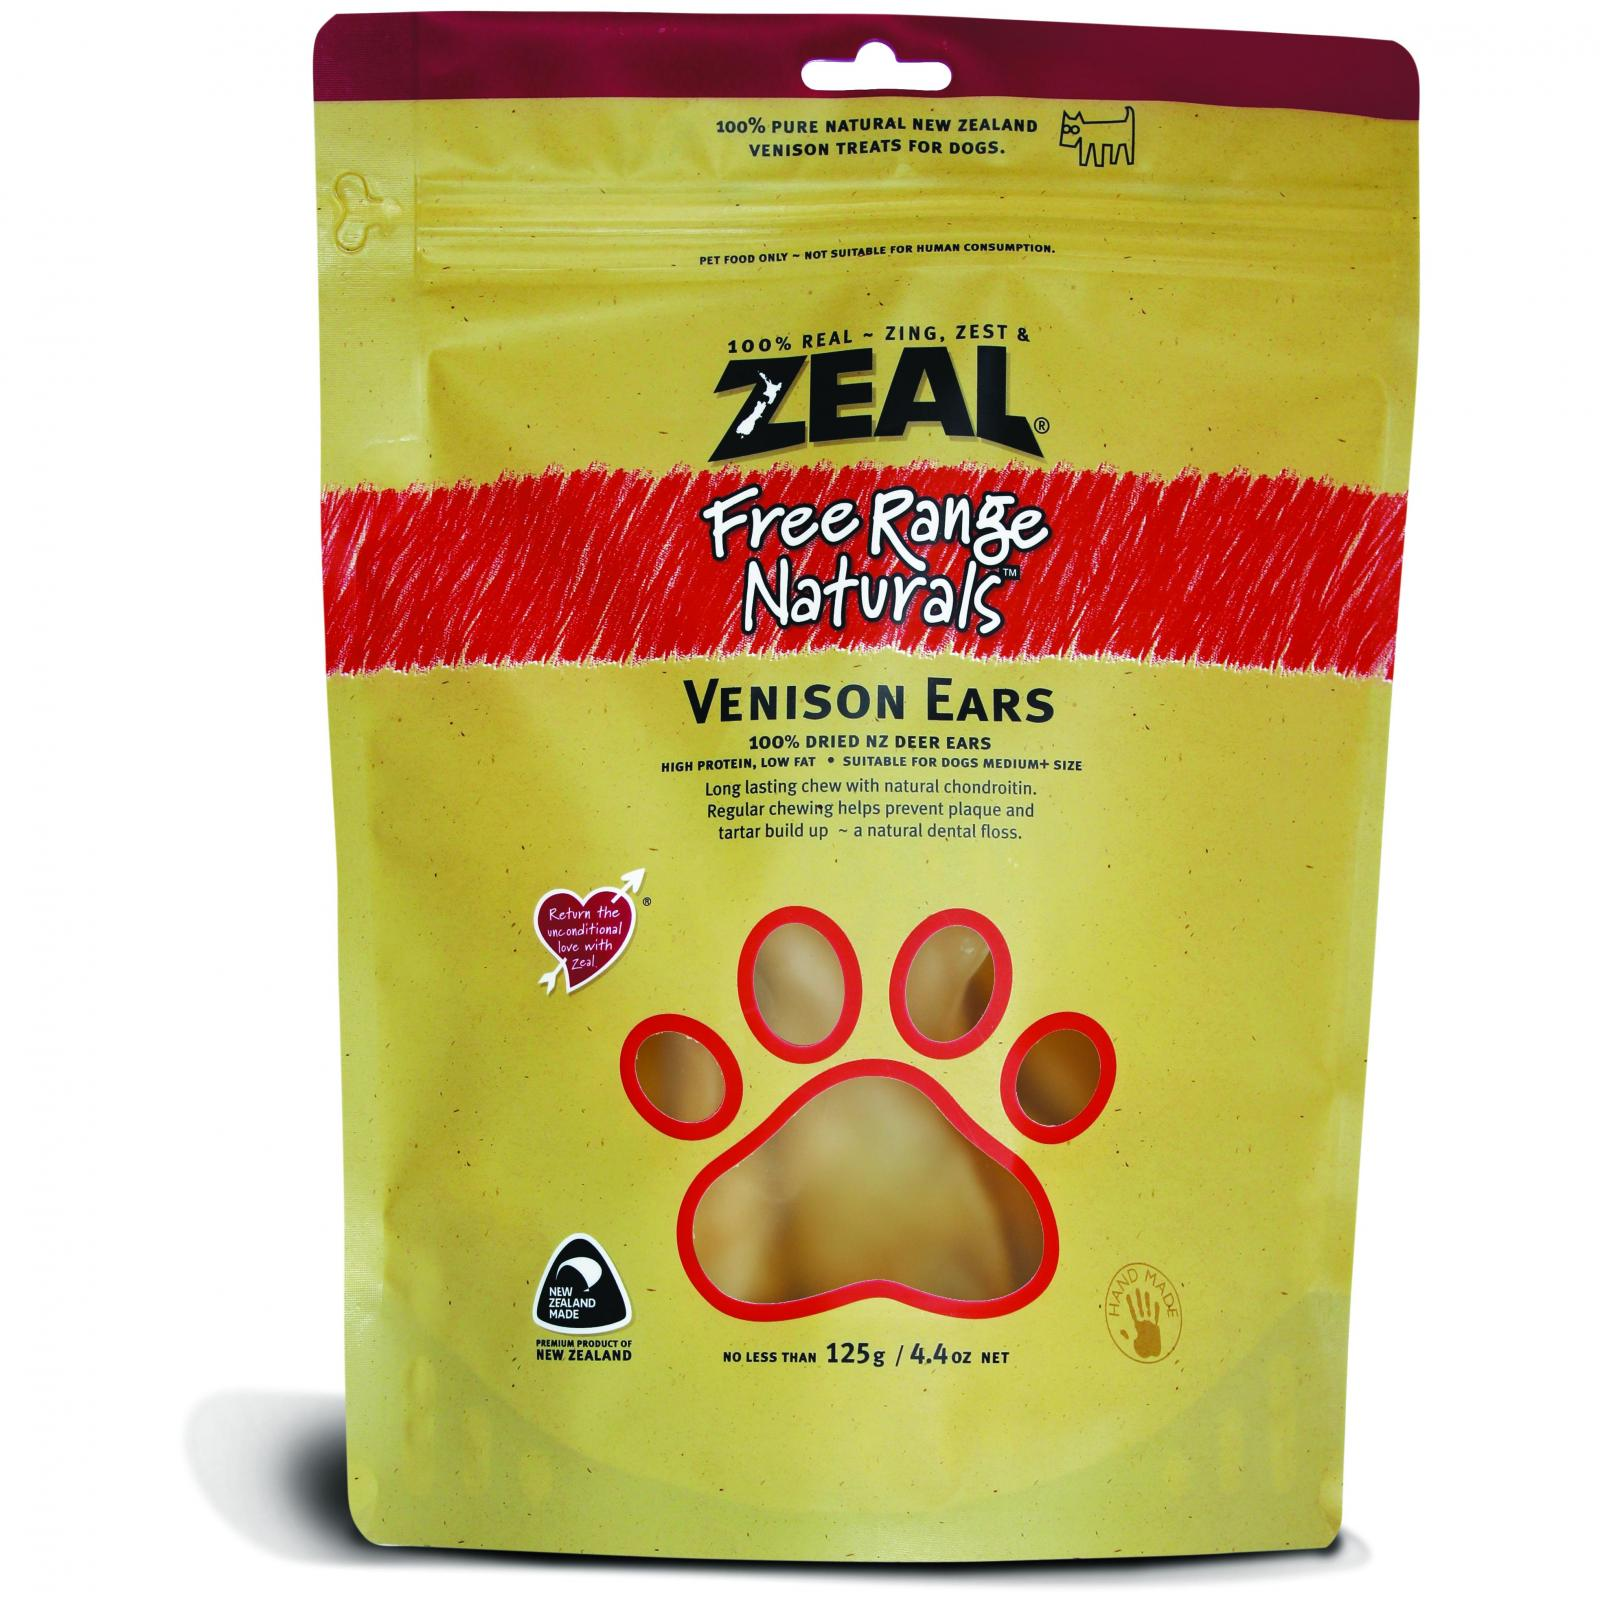 ZEAL FRN Zeal Free Range Naturals Venison Ears Dog Treats 125G